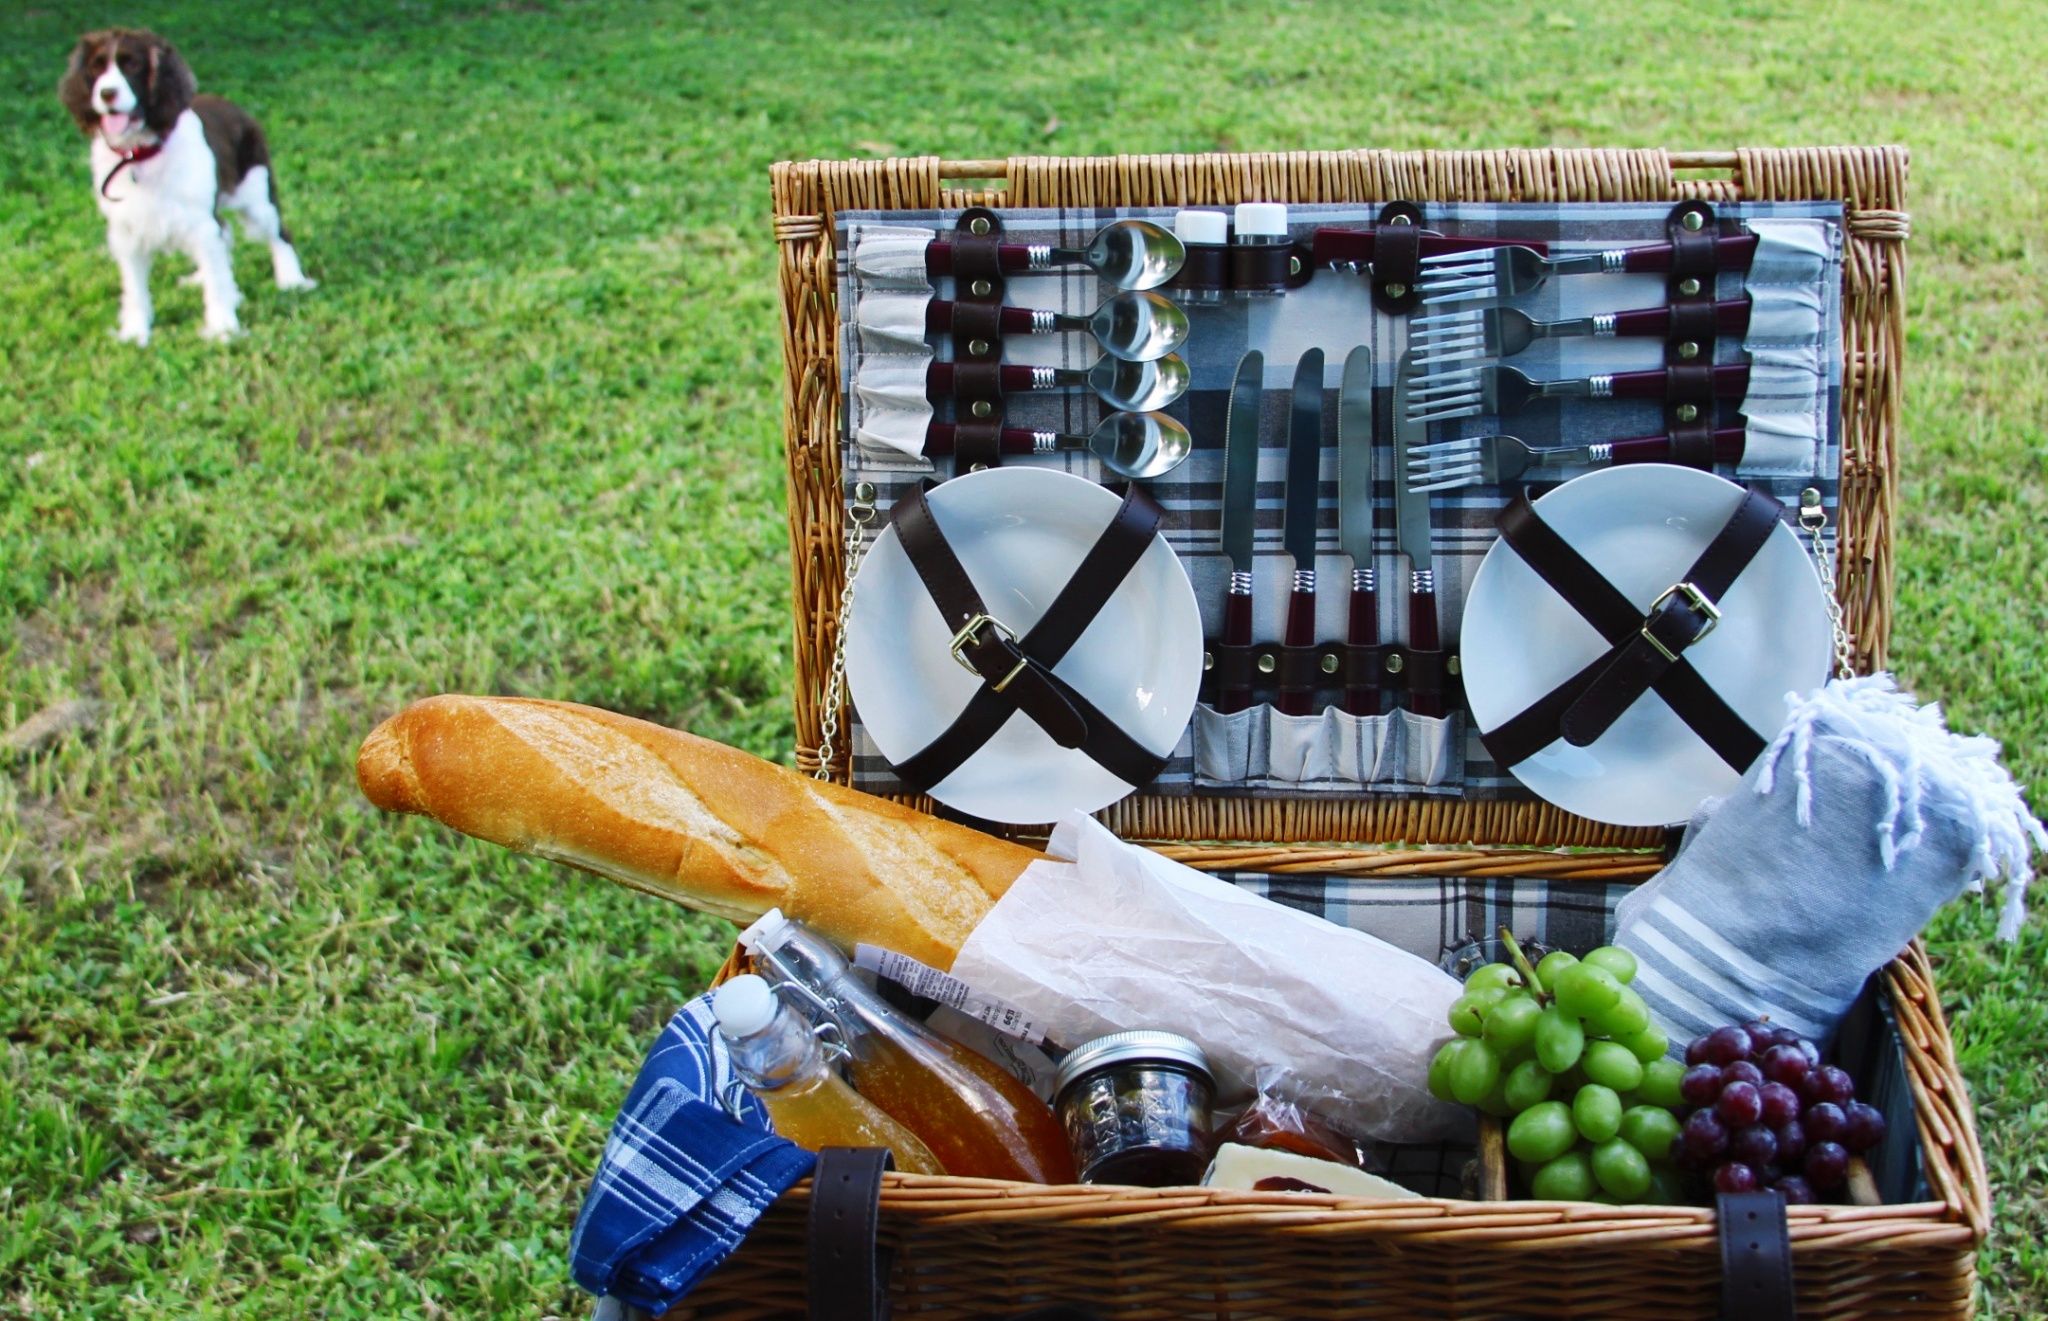 Latino inspired picnic basket